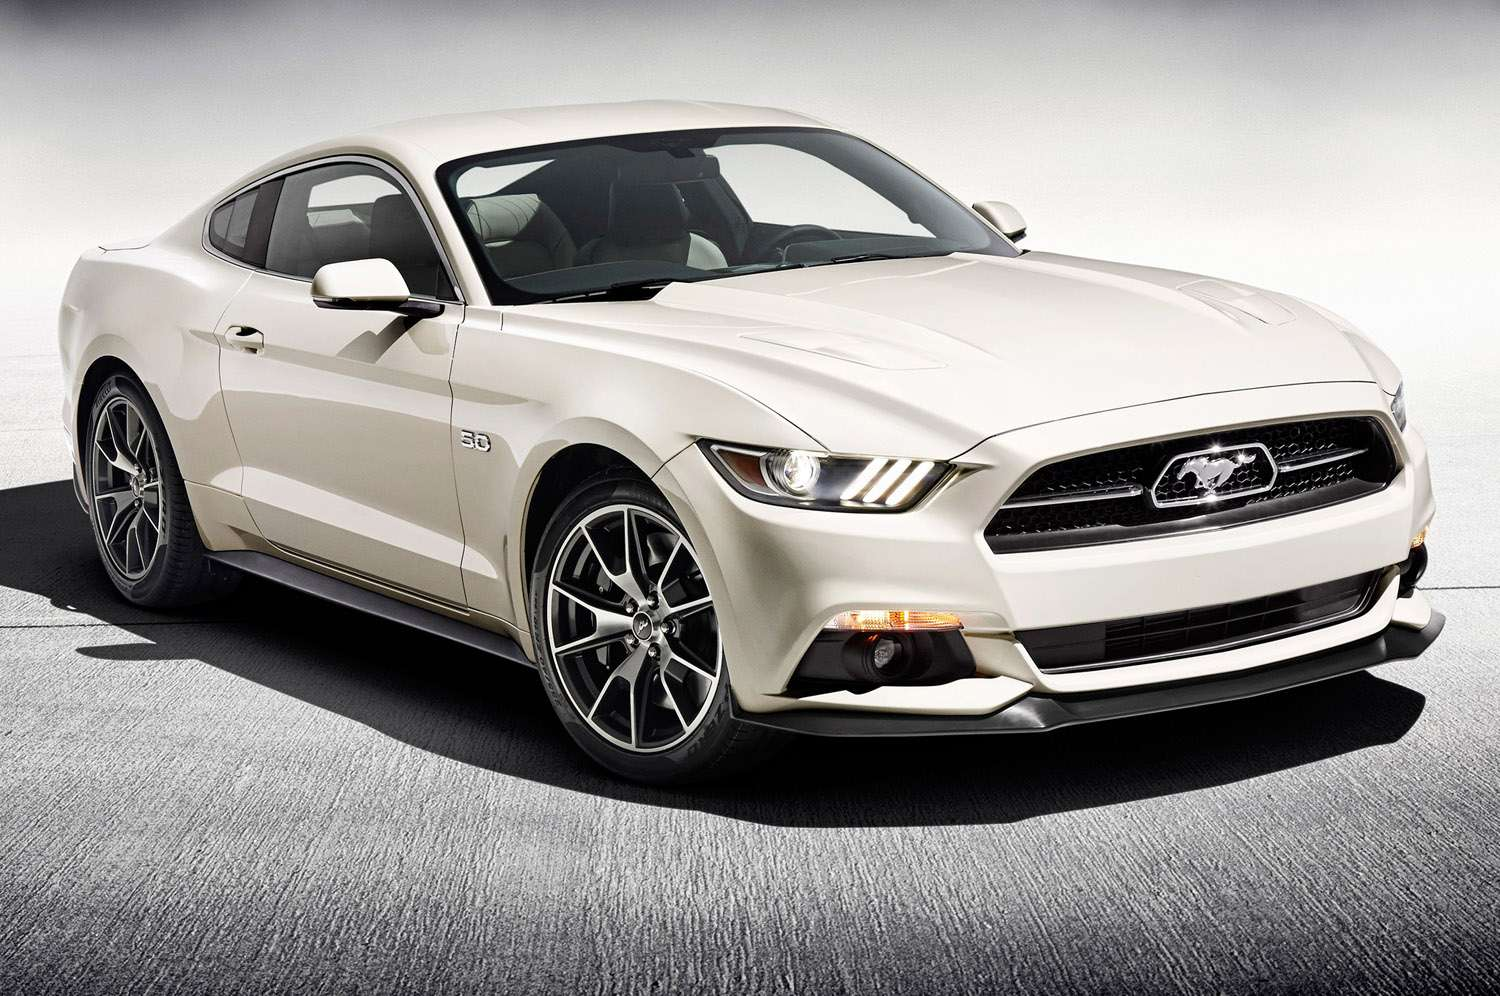 Ford Mustang 50 Years Limited Edition 2015 Foto: Ford